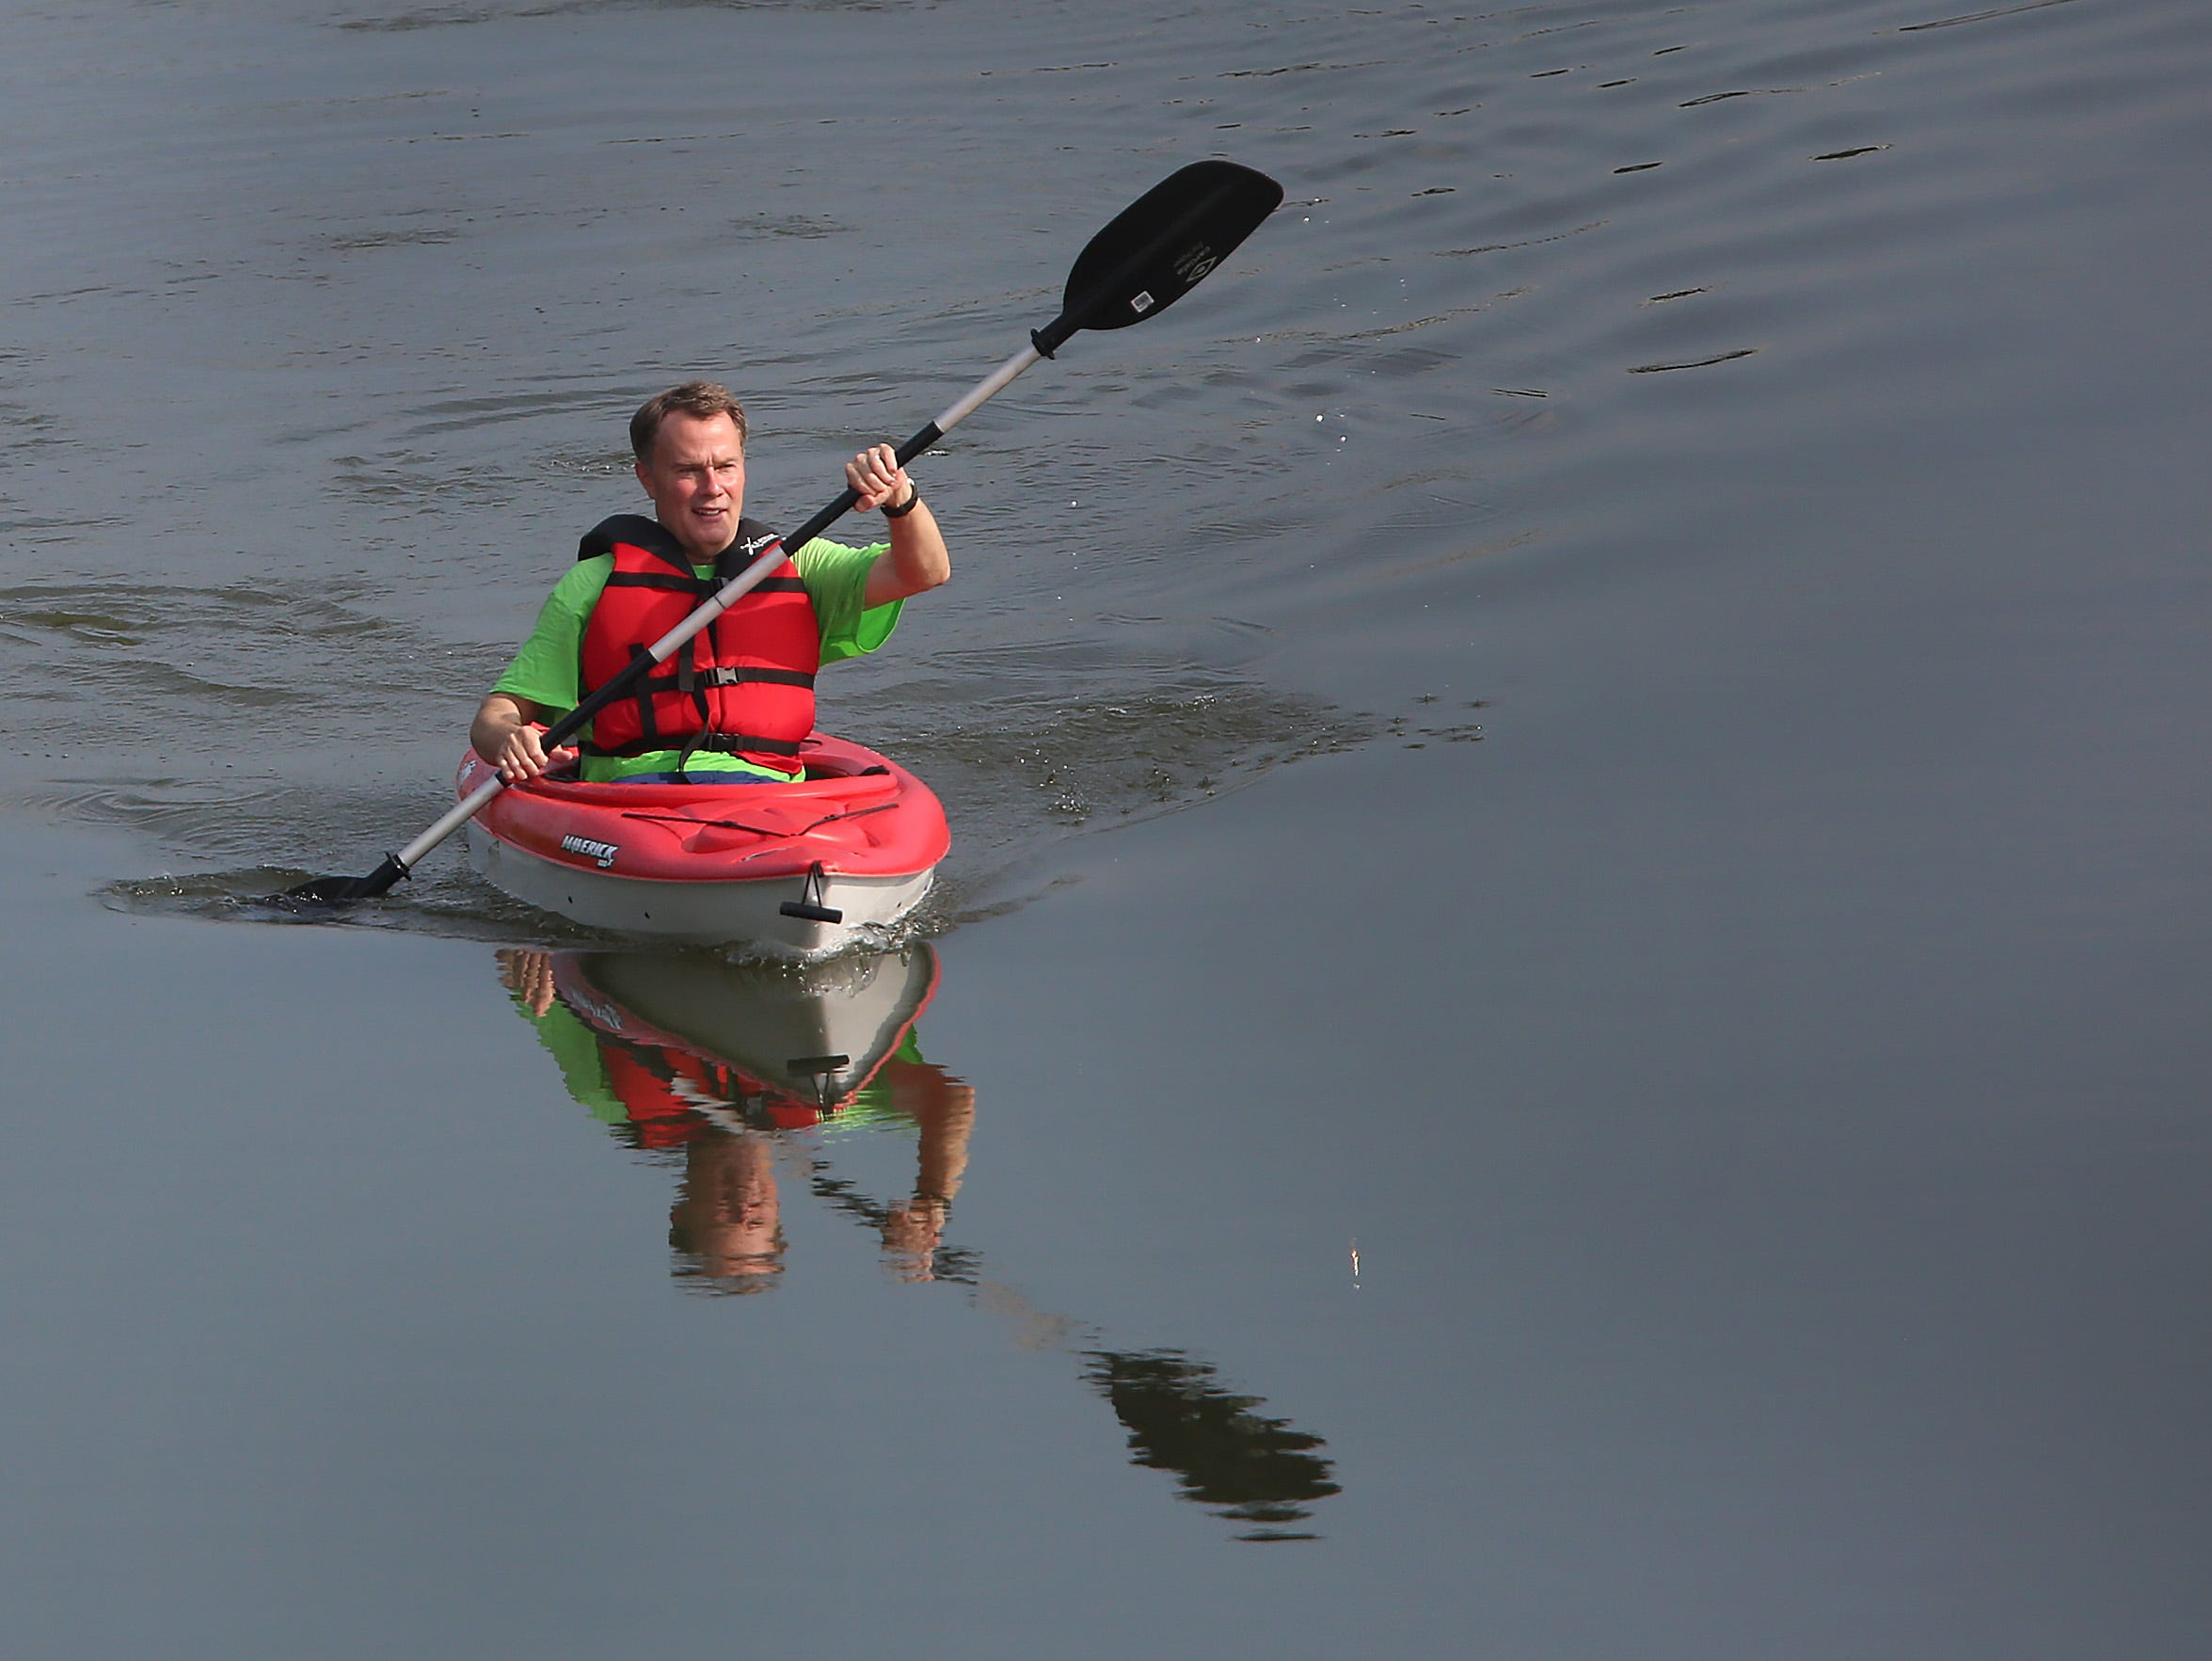 Mayor Joe Hogsett canoes on the White River to downtown on Canoe to Work Day, Friday, June 1, 2018.  He and others canoed and kayaked down the Indianapolis waterways to downtown.  CBBEL (Christopher B. Burke Engineering, LLC) and Citizens Energy Group sponsored the event to celebrate the Indiana waterways, and the mayor officially proclaimed June 1 as Canoe to Work Day in Indianapolis.